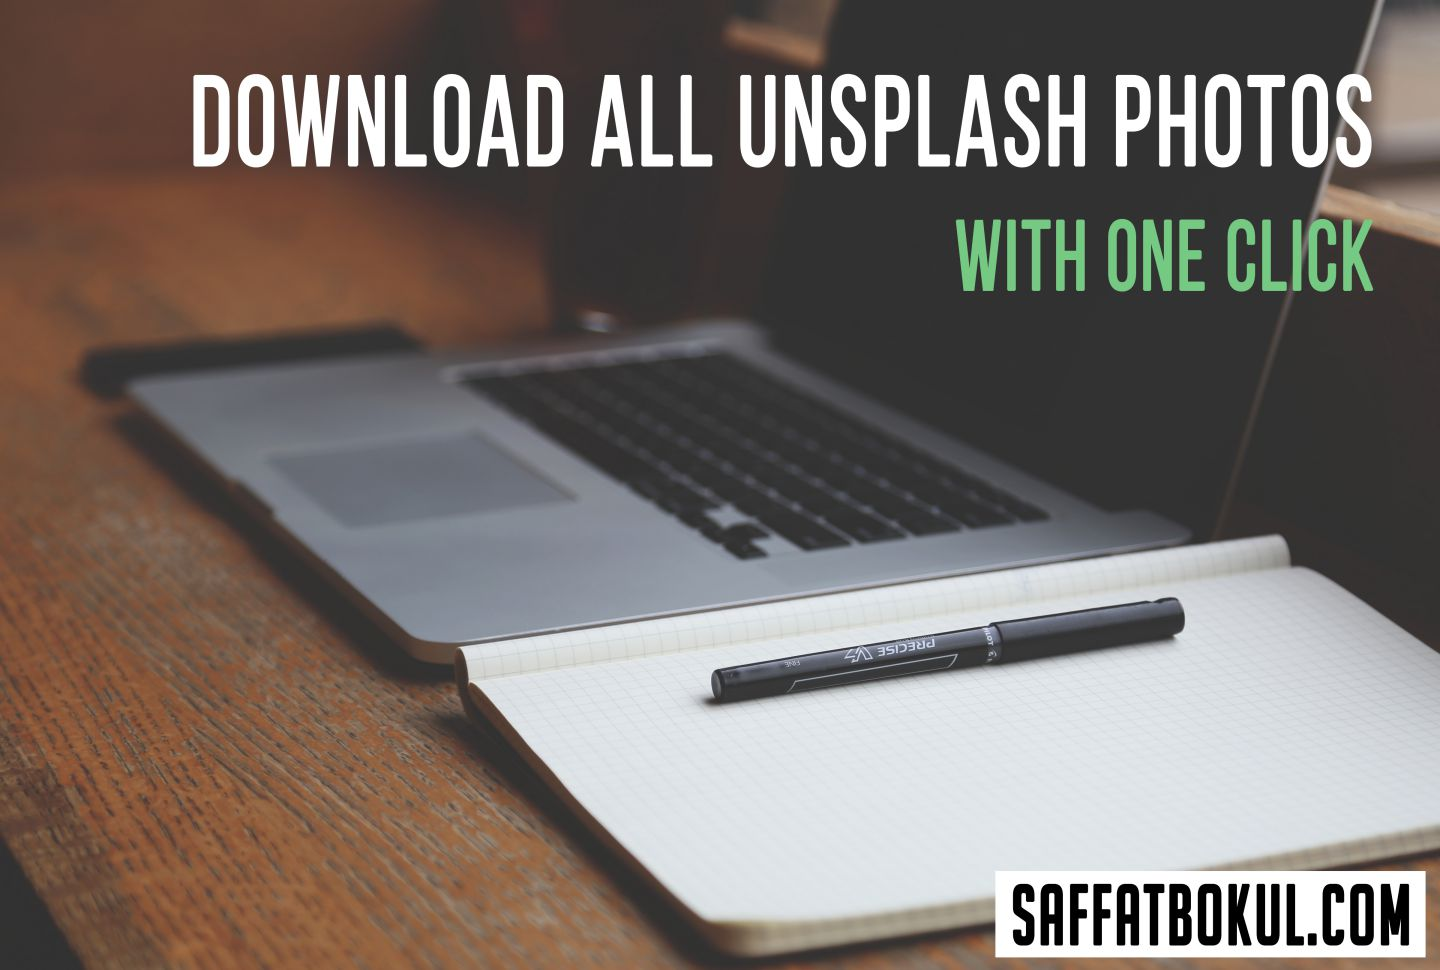 Download All Unsplash Free Stock Photos, Unsplash Photo Archive